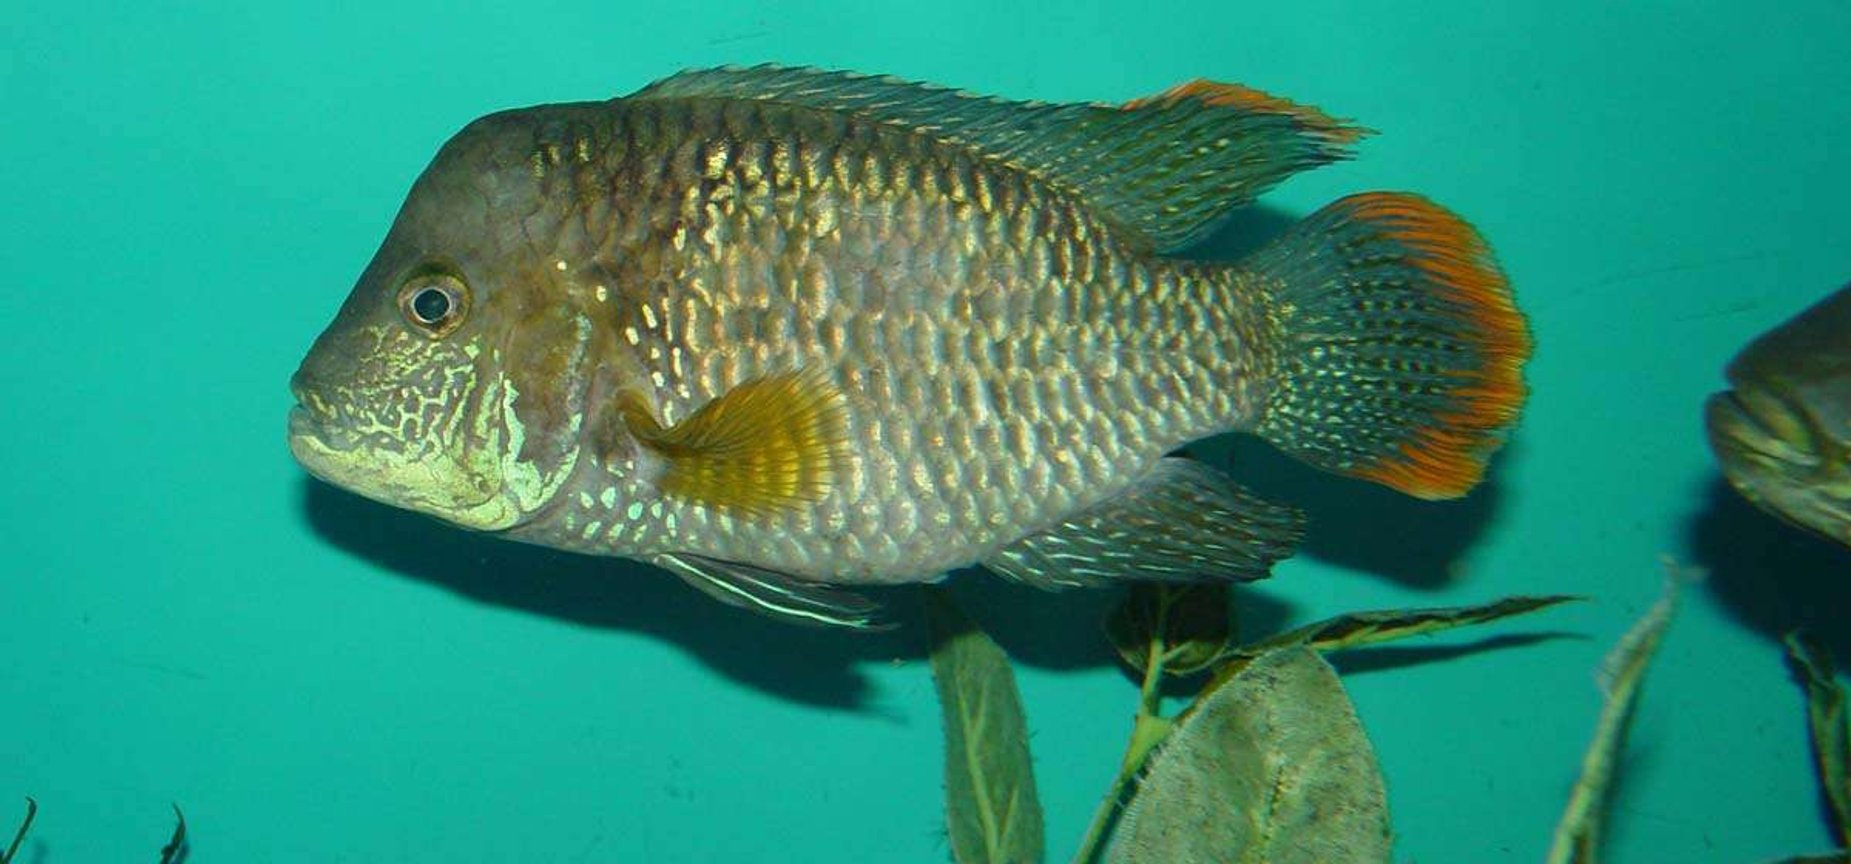 "freshwater fish - aequidens rivulatus - green terror stocking in 150 gallons tank - Green Terror 6"" 5 yrs. old"